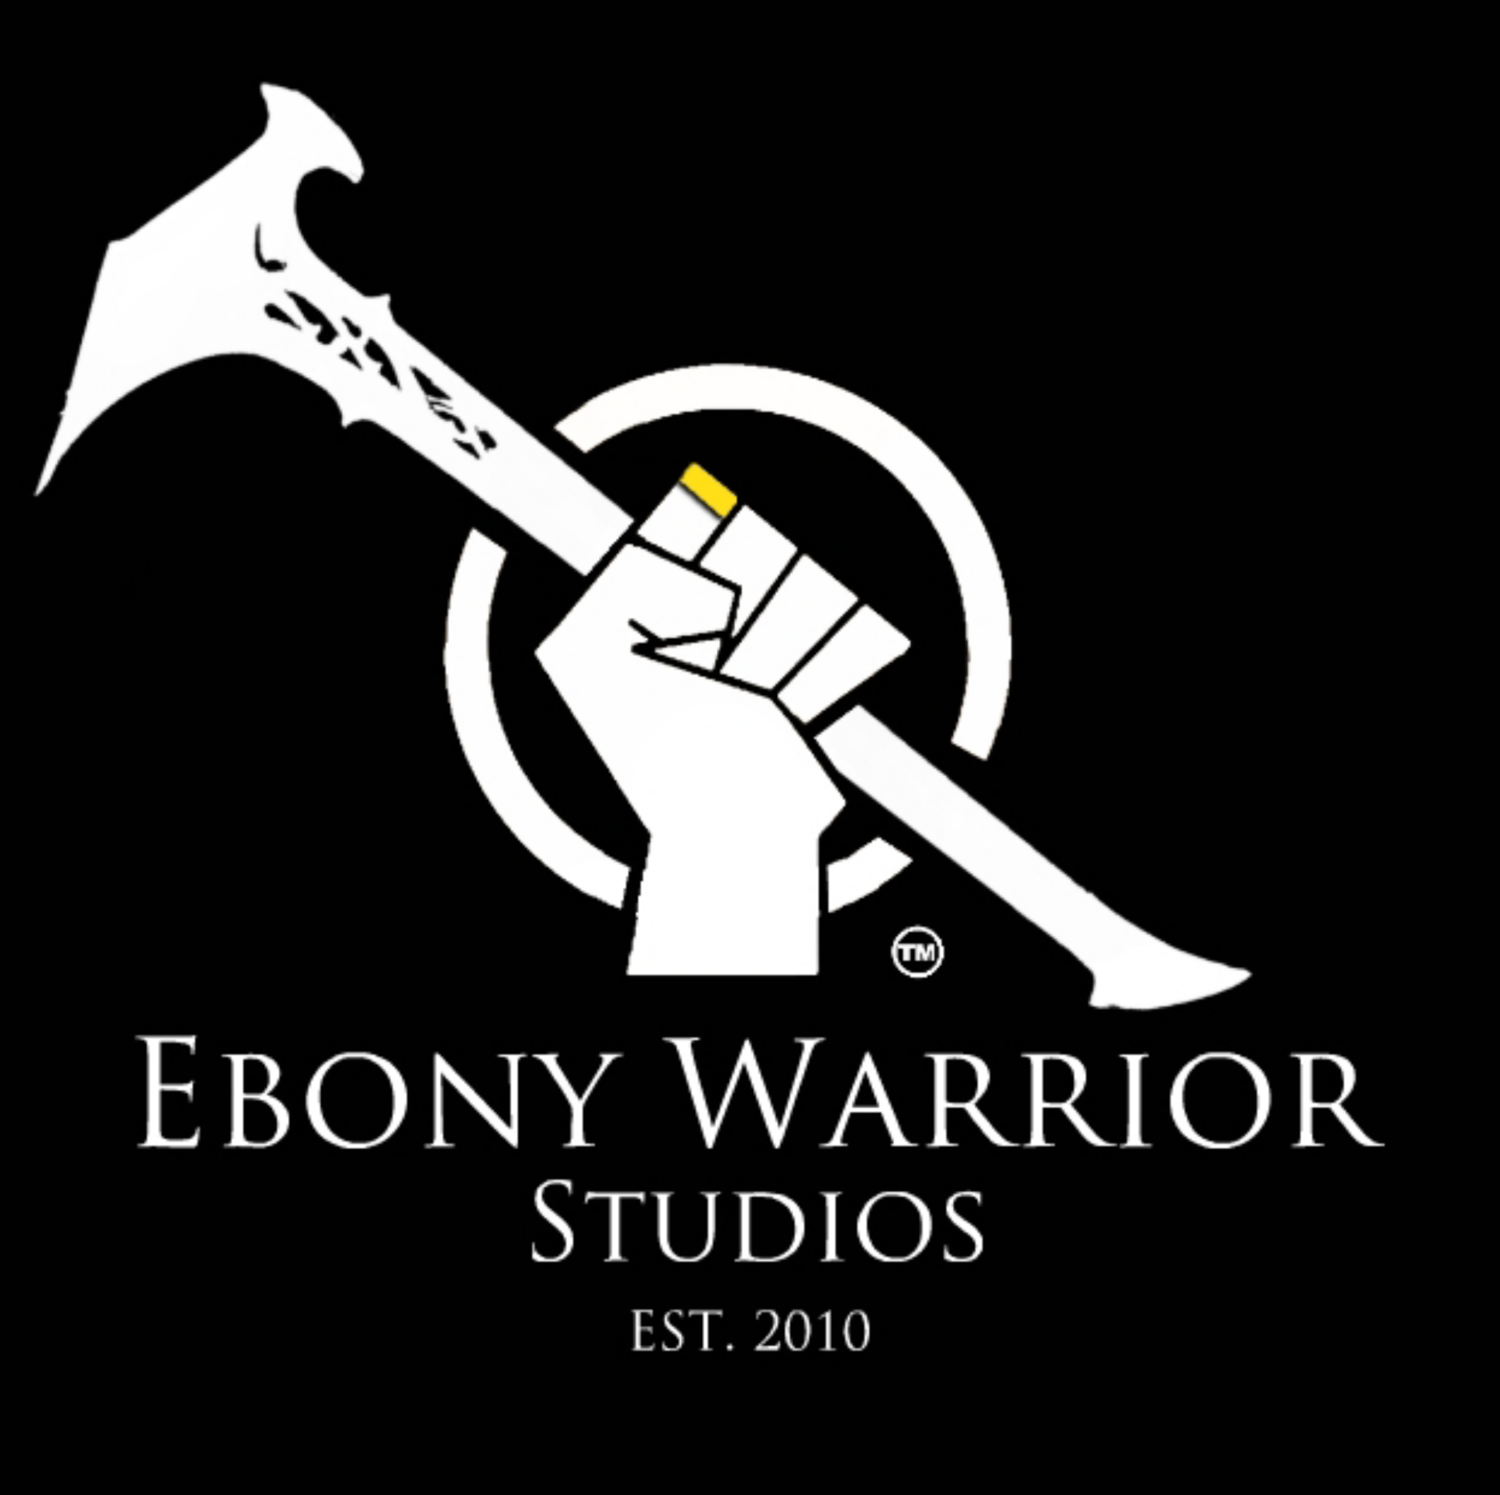 Ebony Warrior Studios